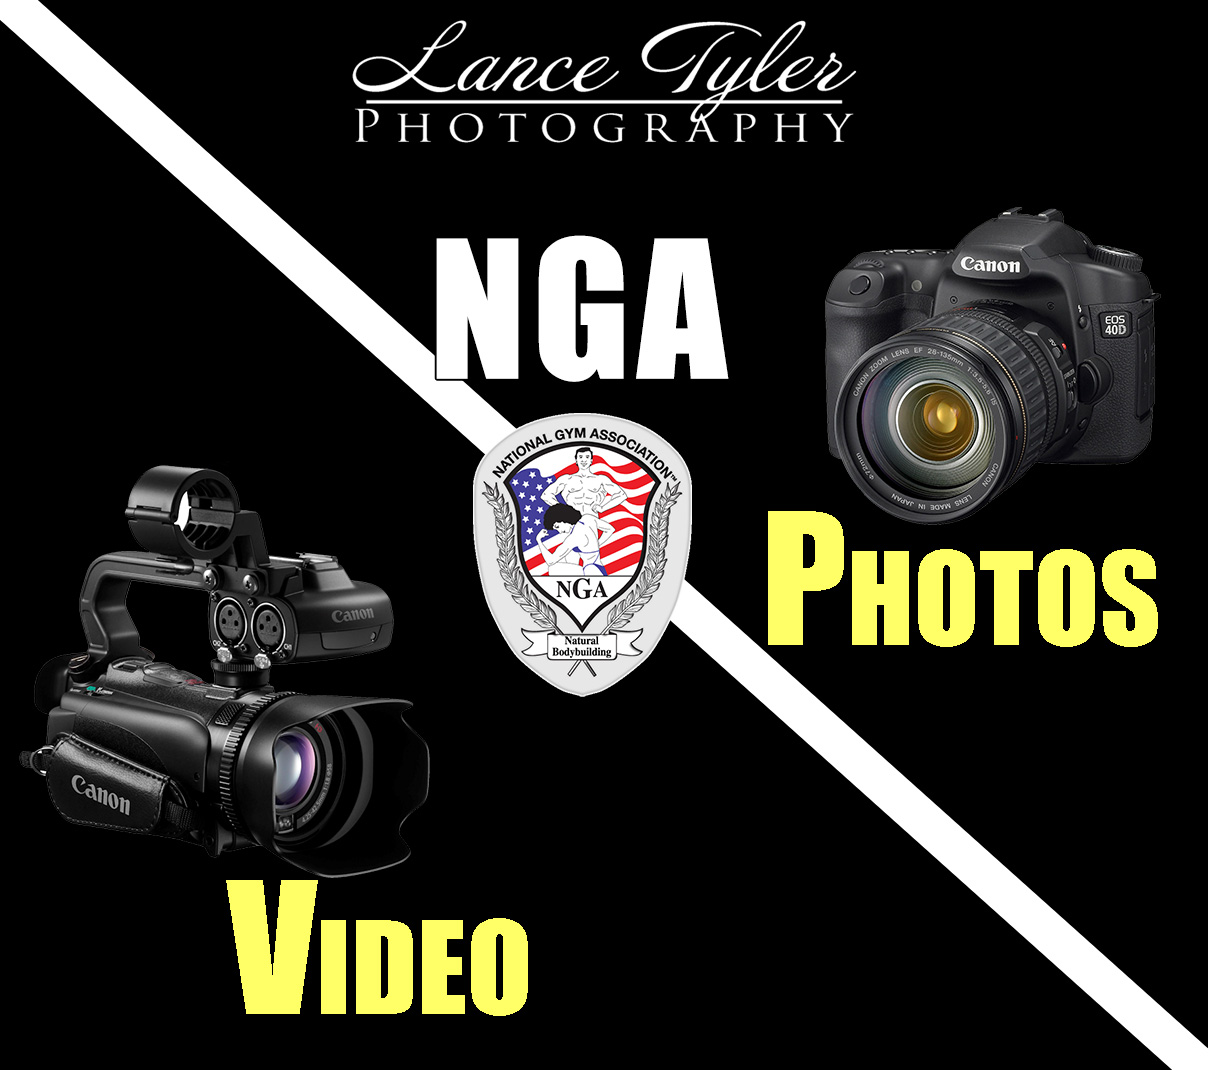 NGA Photography & DVD Bundle